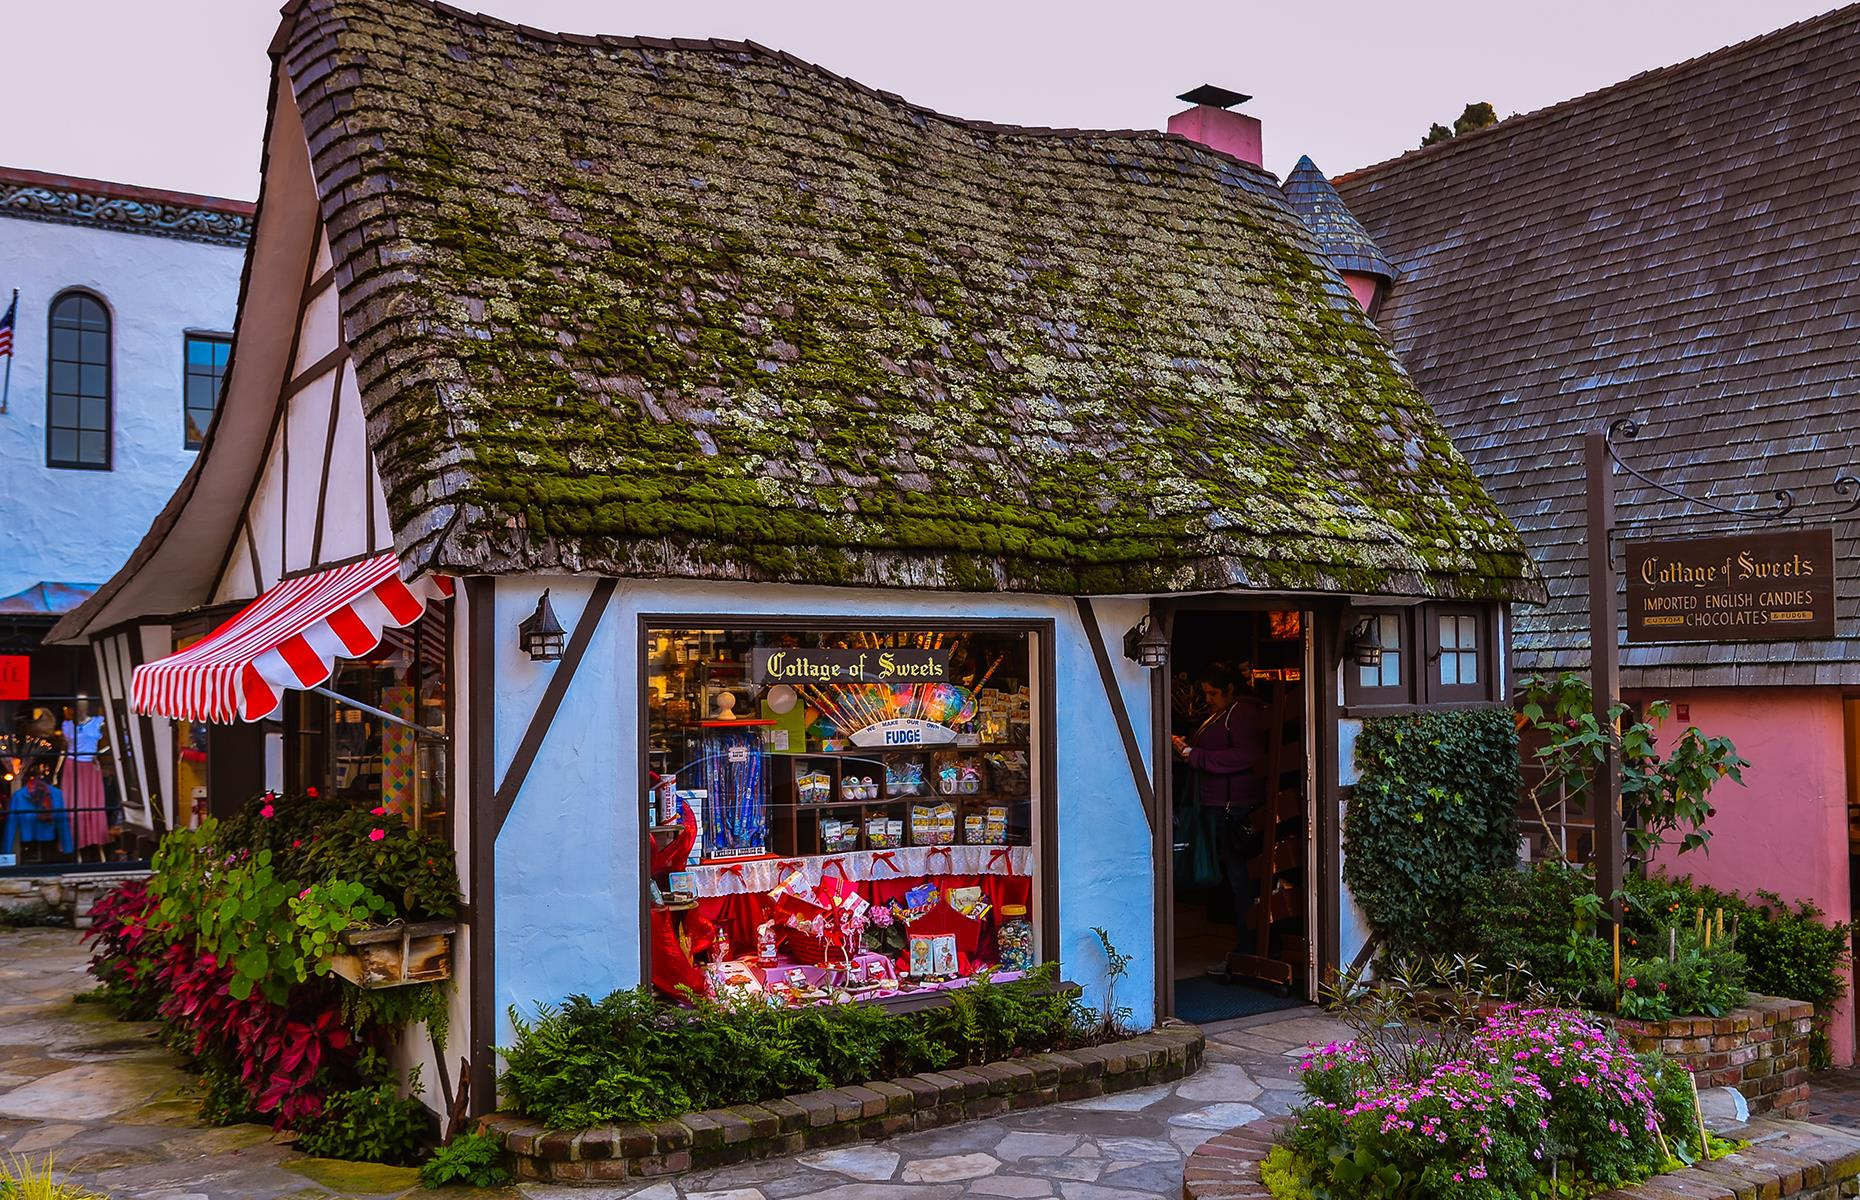 Slide 4 of 32: A stroll around Carmel-by-the-Sea will quickly reveal that it's not your typical West Coast surf town. With thatched cottages like something out of a British village, Carmel-by-the-Sea is one-of-a-kind. Just off the famous Highway 1, it's a perfect stop along Big Sur as it offers everything from art galleries and boutiques to restaurants and wine-tasting rooms. The town's beach has earned a stellar reputation for its pristine white sand and azure waters, too. Check the latest travel alerts here.